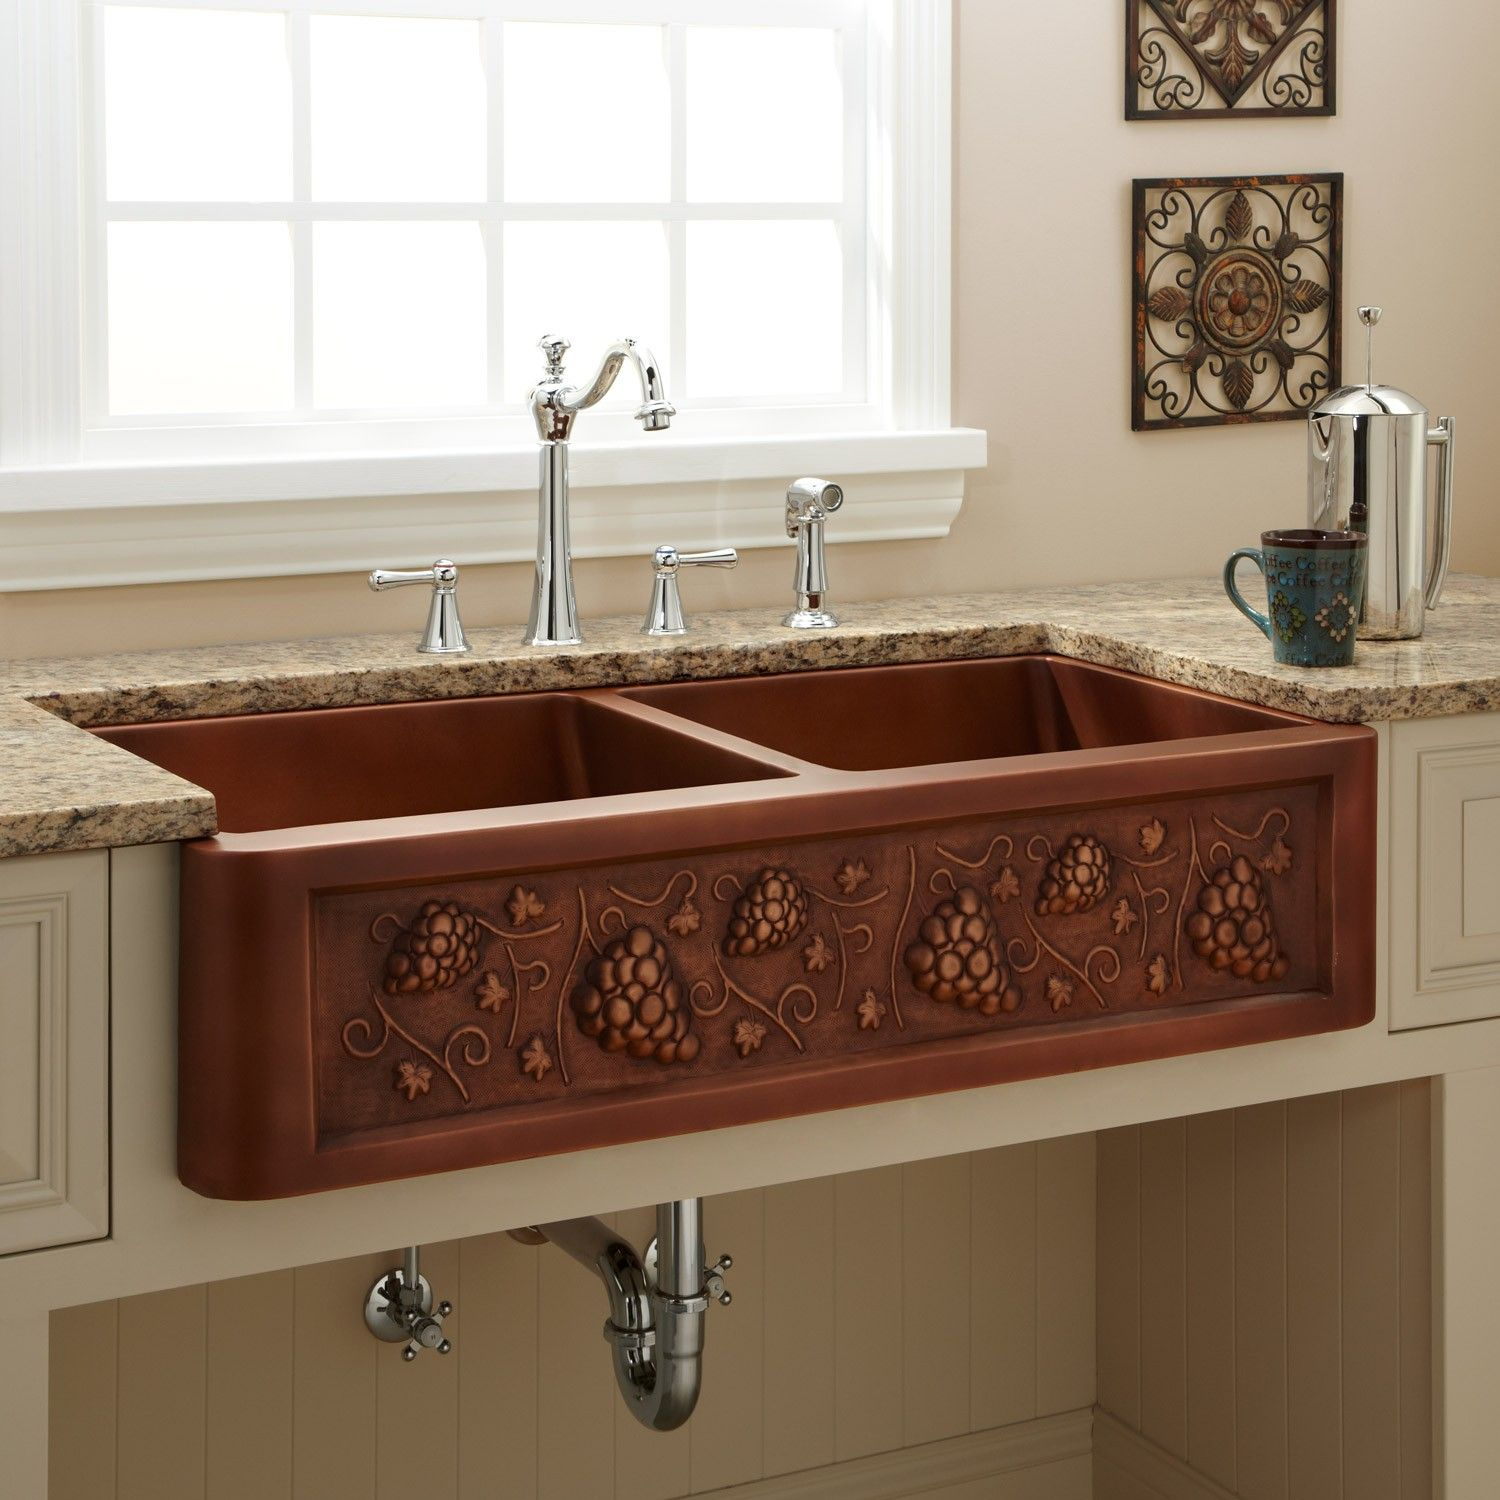 Medium image of 39   tuscan double bowl copper farmhouse sink